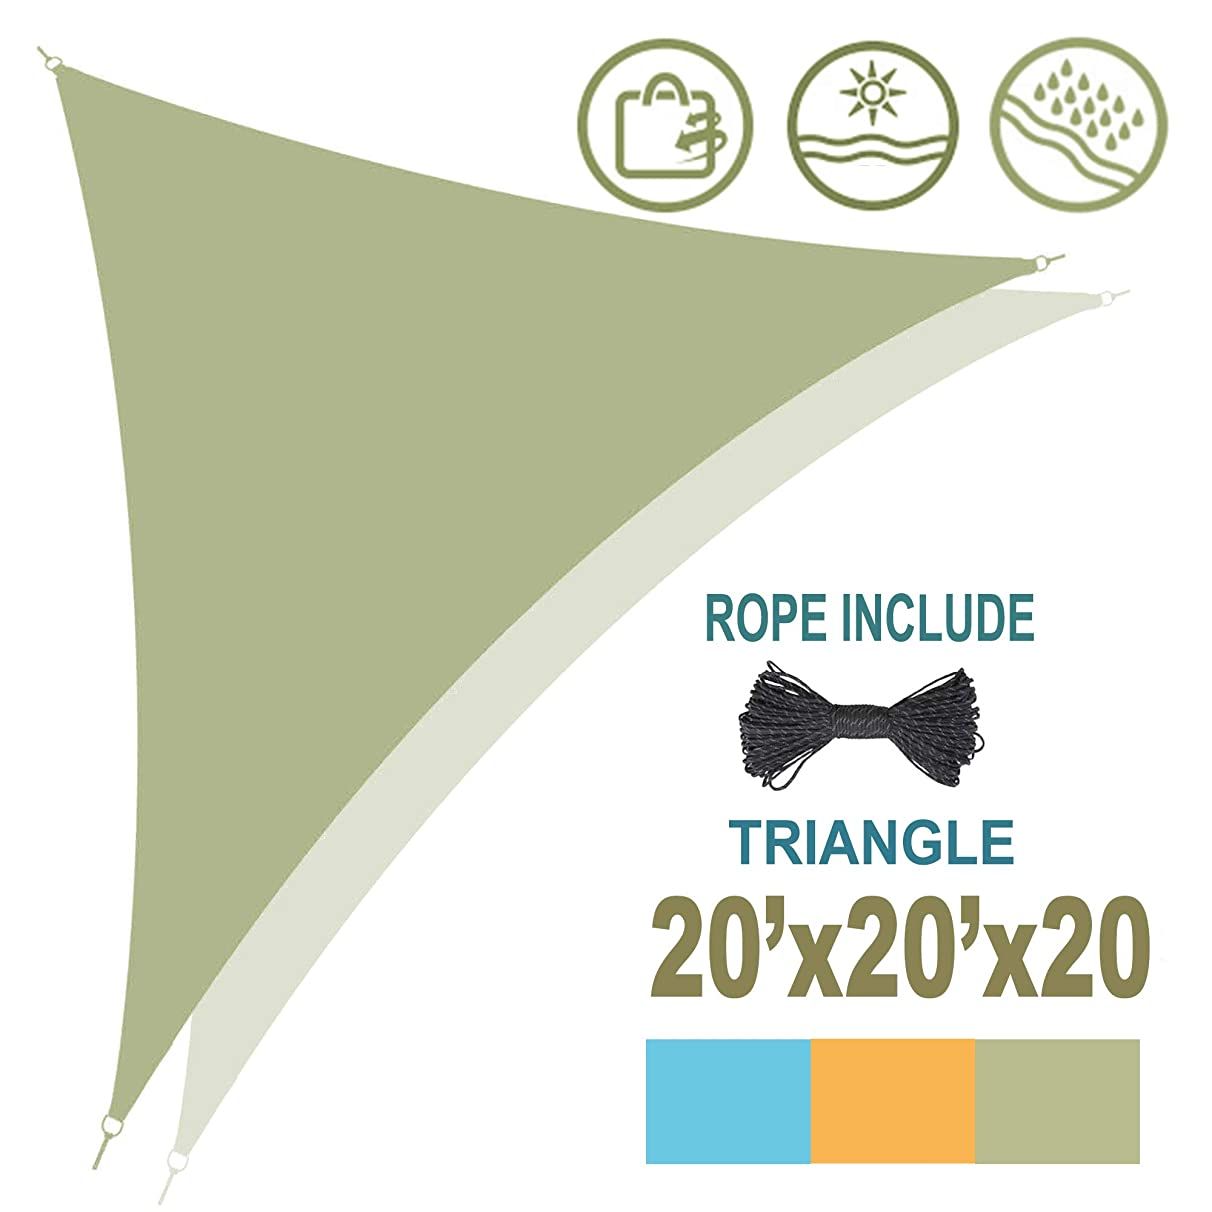 Lovinouse 20'X20'X20' Triangle Shade, Waterproof Sun Shade Sail, Silver-Coated, UV Block Fabric Canopy with Steel D-Rings & Ropes, Perfect for Outdoor Garden, Patio, Yard (Green)